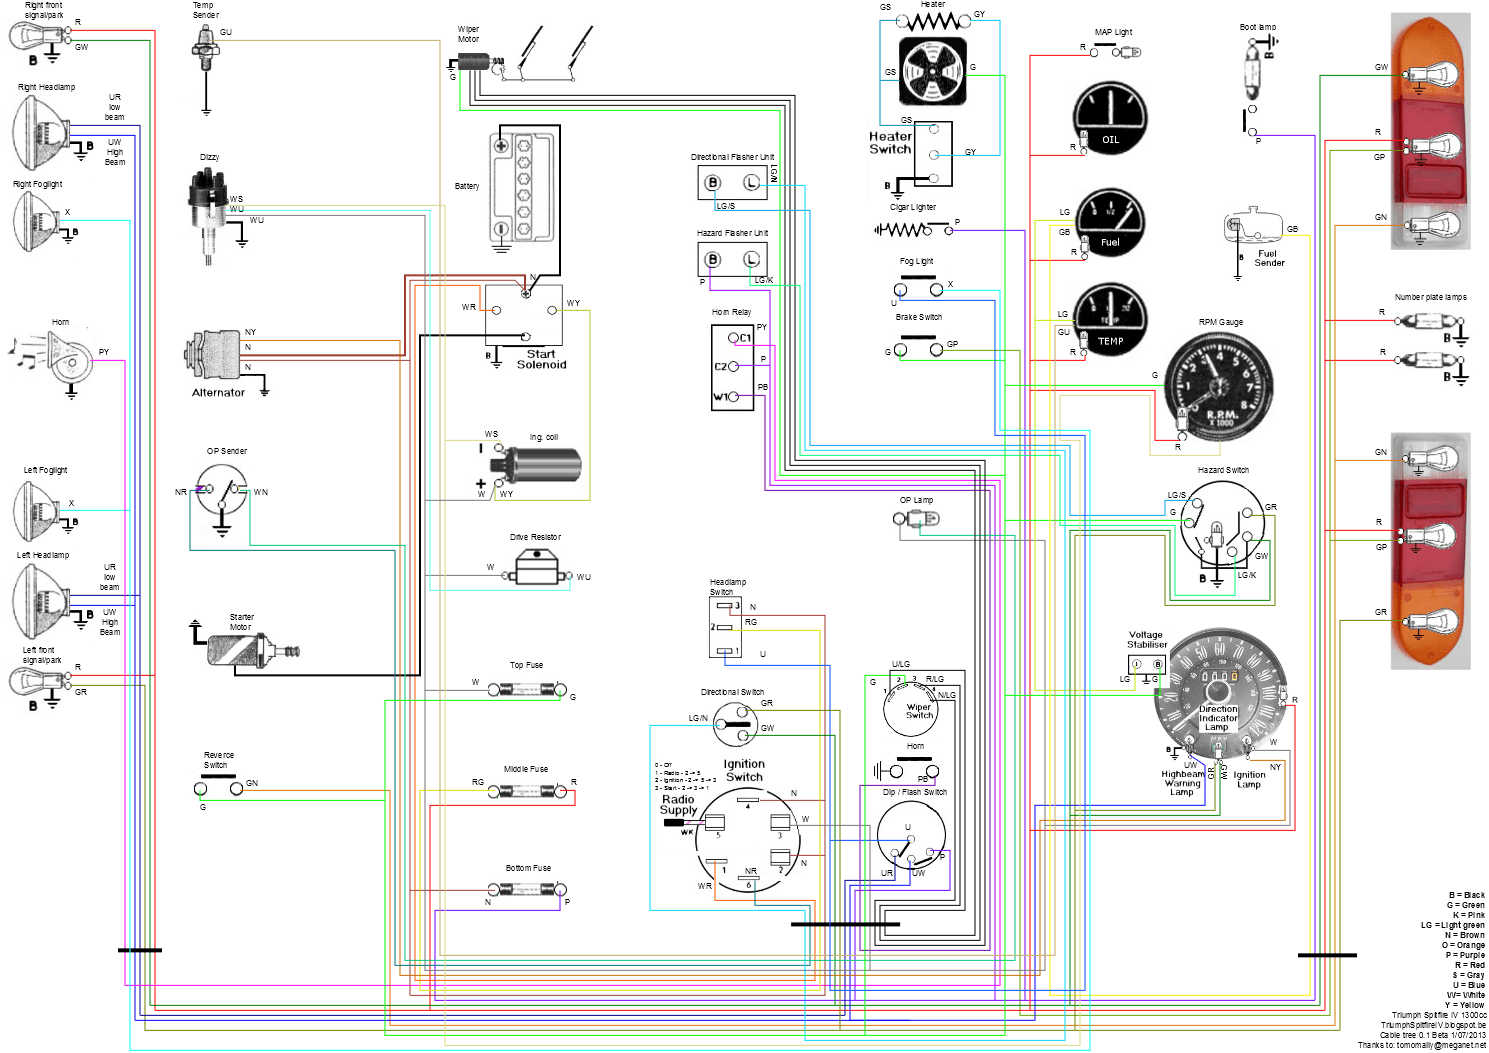 hight resolution of 1968 triumph tr250 wiring diagram simple wiring schema 08 triumph wiring diagrams 1968 triumph tr250 wiring